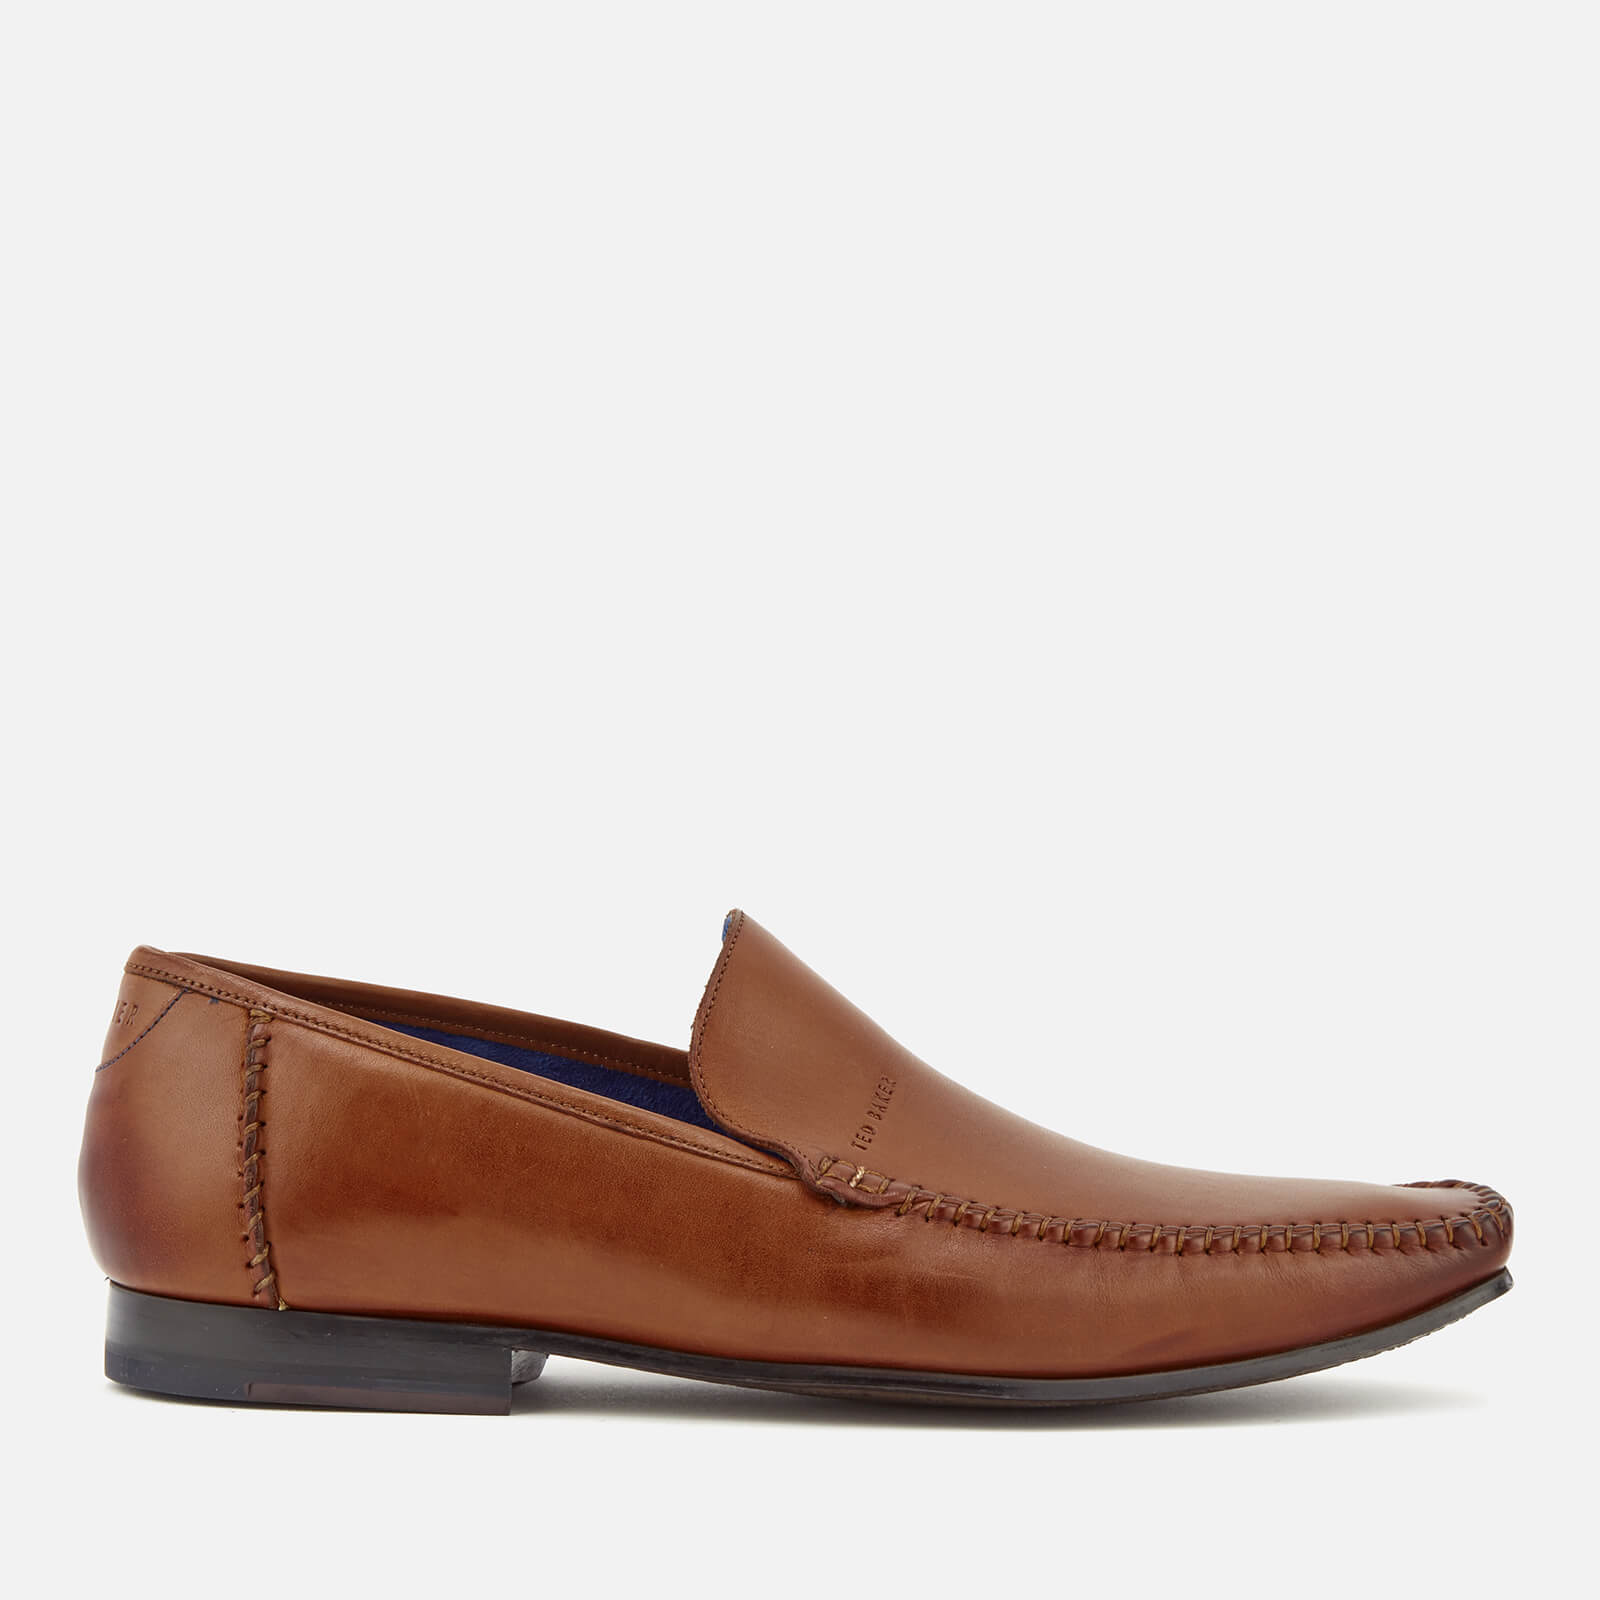 9e928acbf Ted Baker Men s Bly 9 Leather Slip-On Loafers - Tan Clothing ...